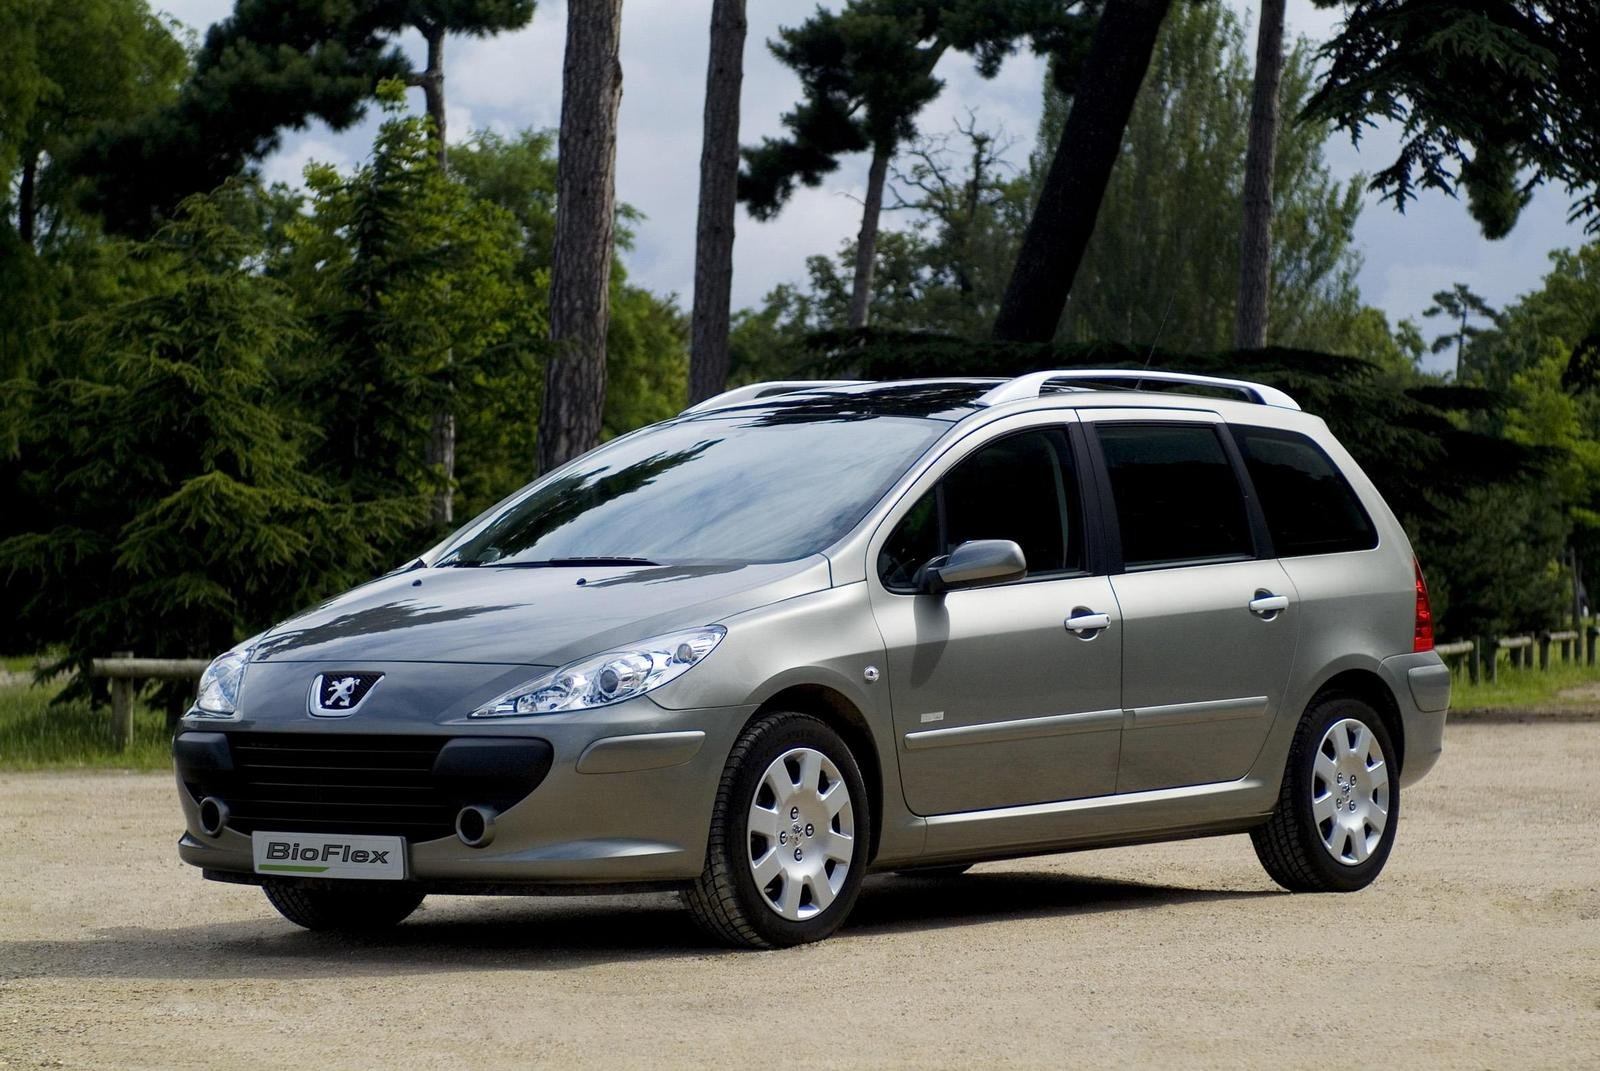 2007 peugeot 307 sw bioflex picture 190209 car review. Black Bedroom Furniture Sets. Home Design Ideas